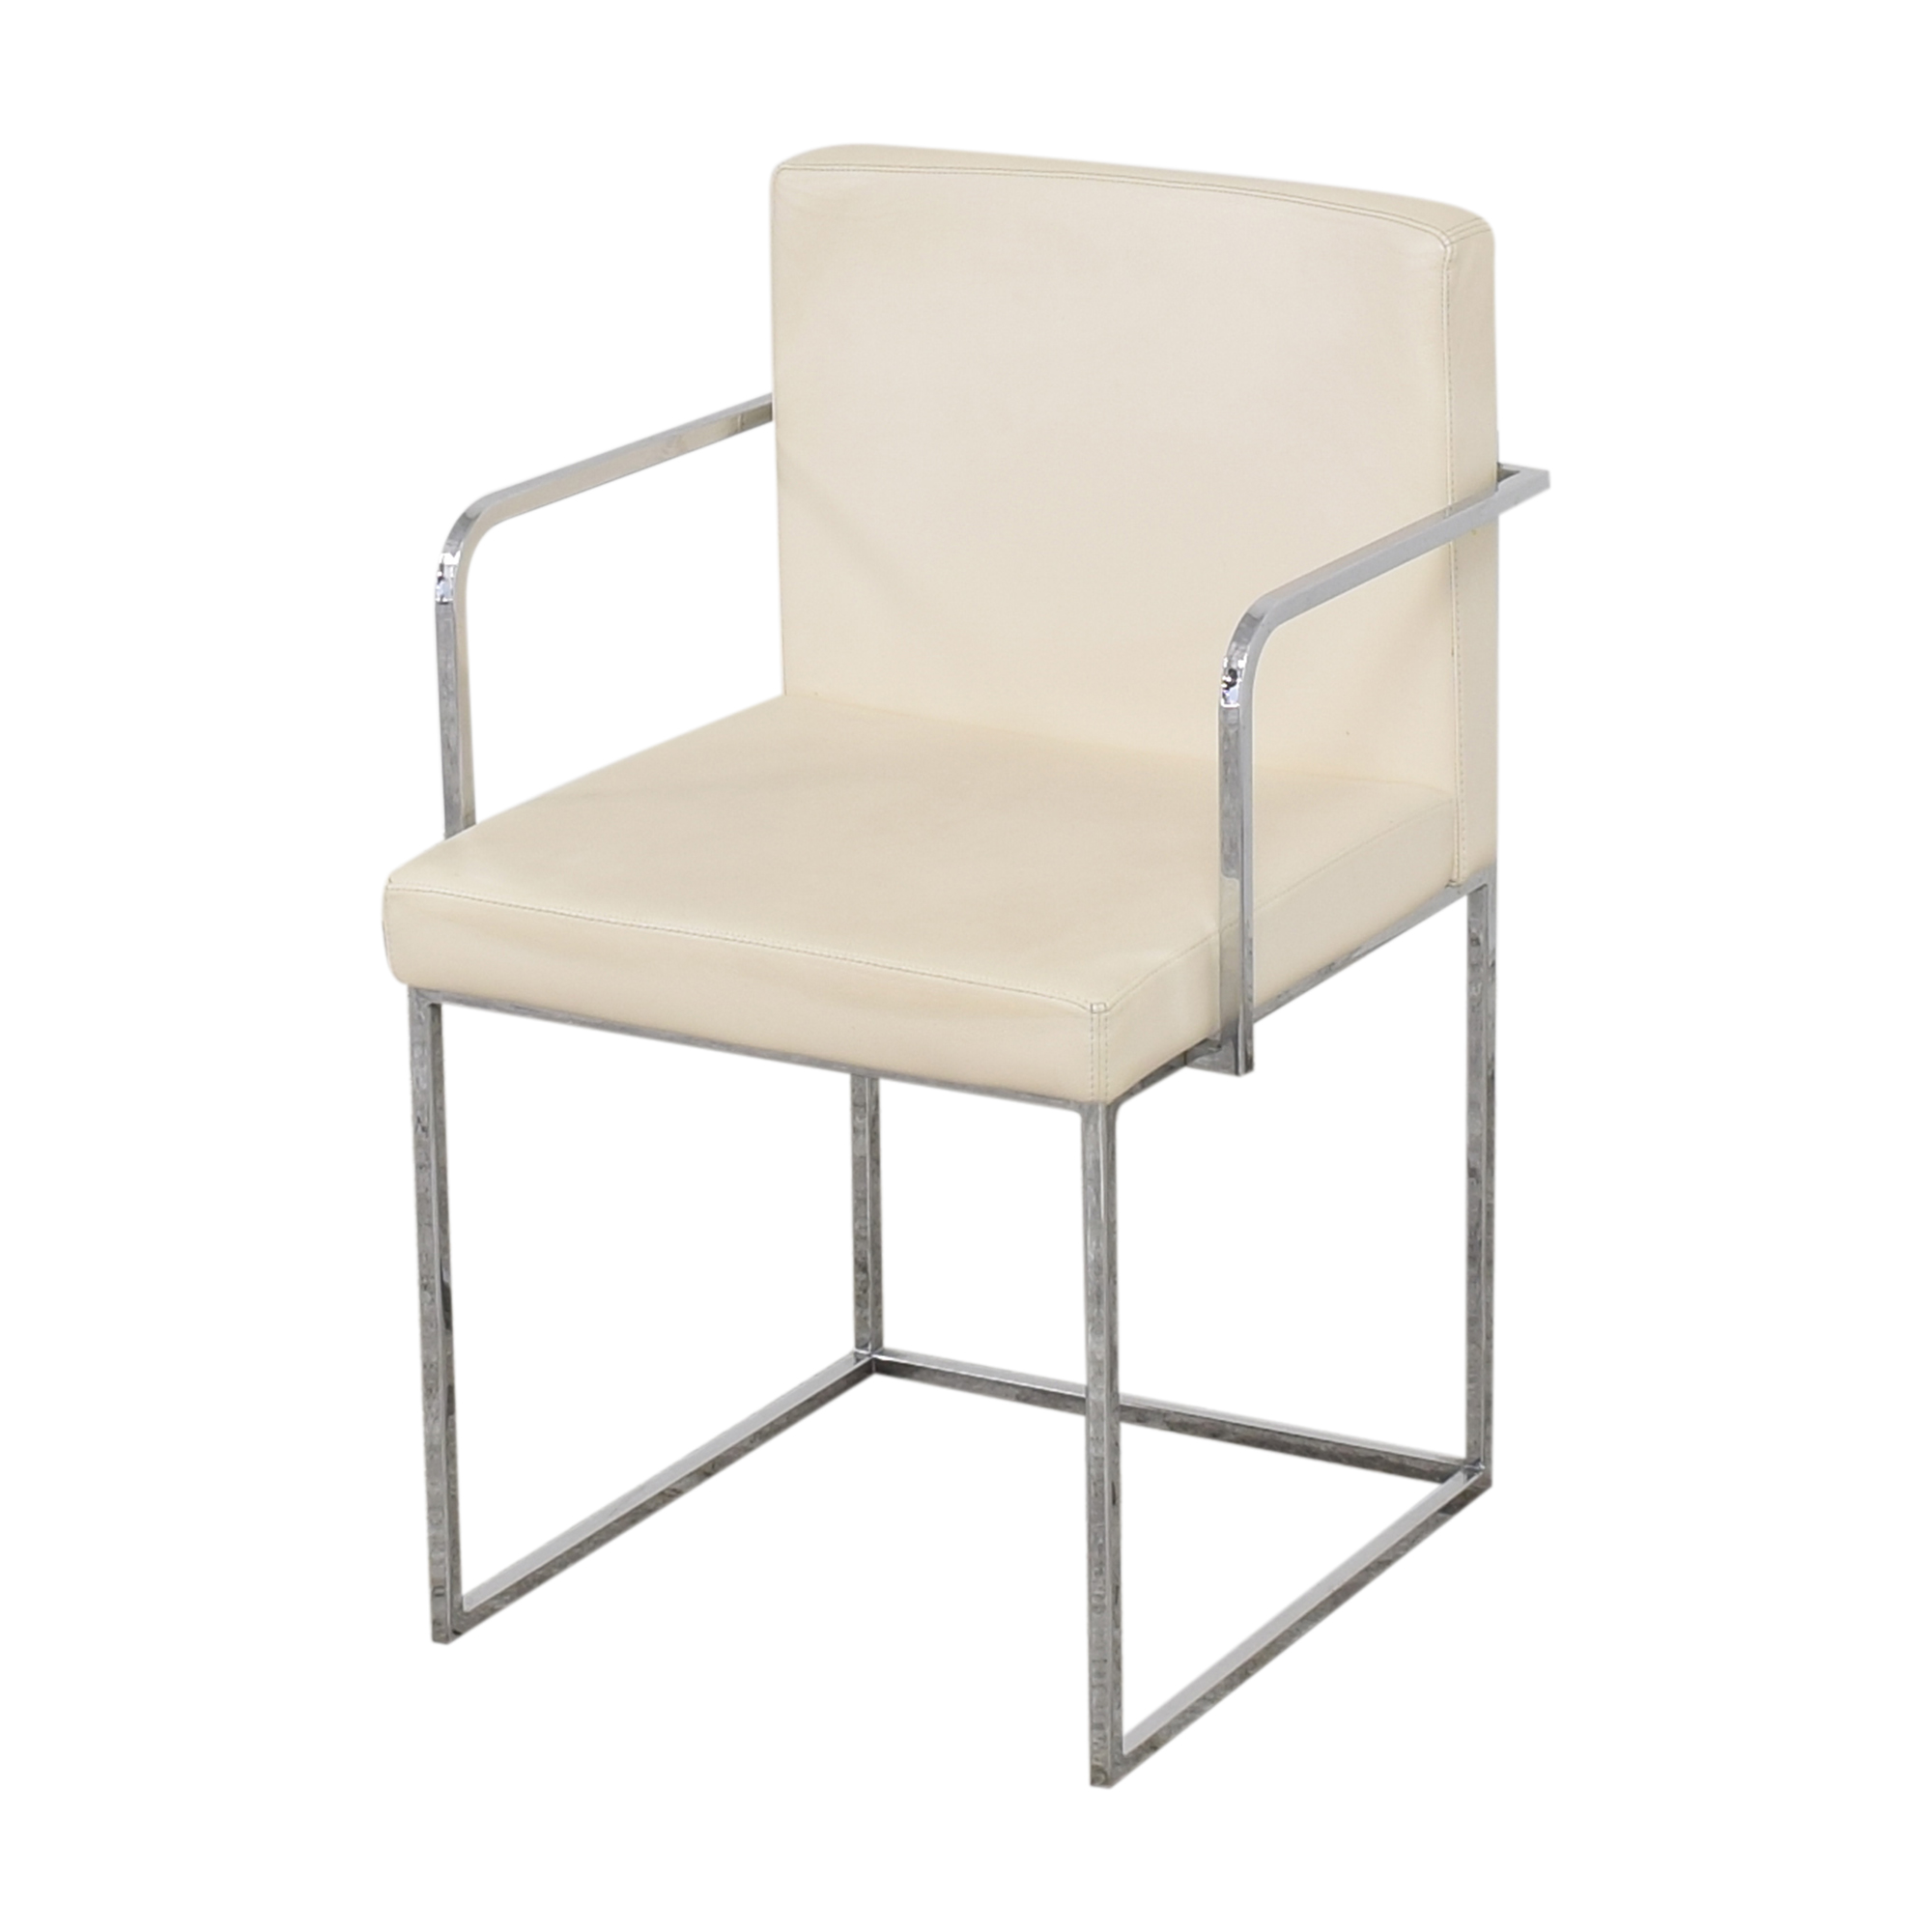 Calligaris Even Plus Chairs / Dining Chairs